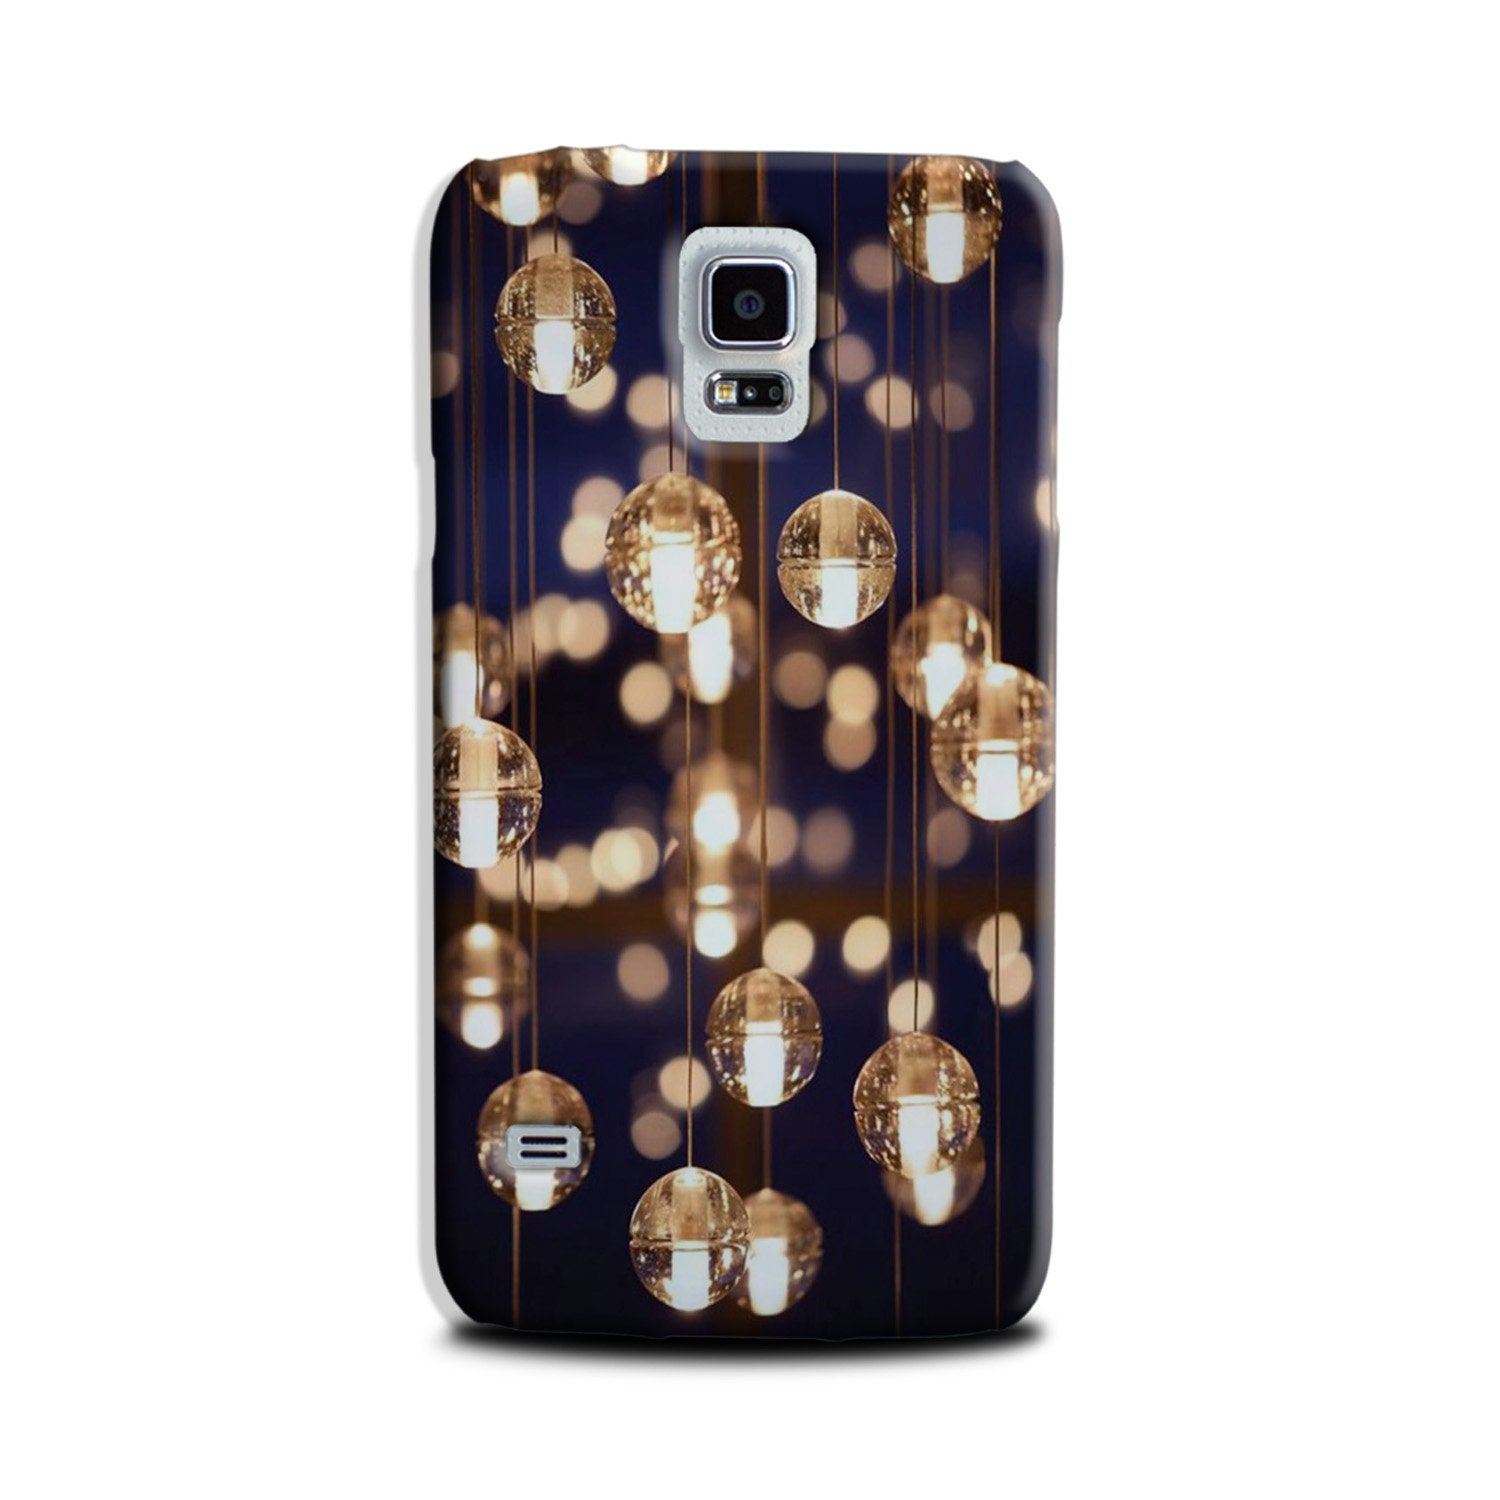 Party Bulb2 Case for Galaxy S5